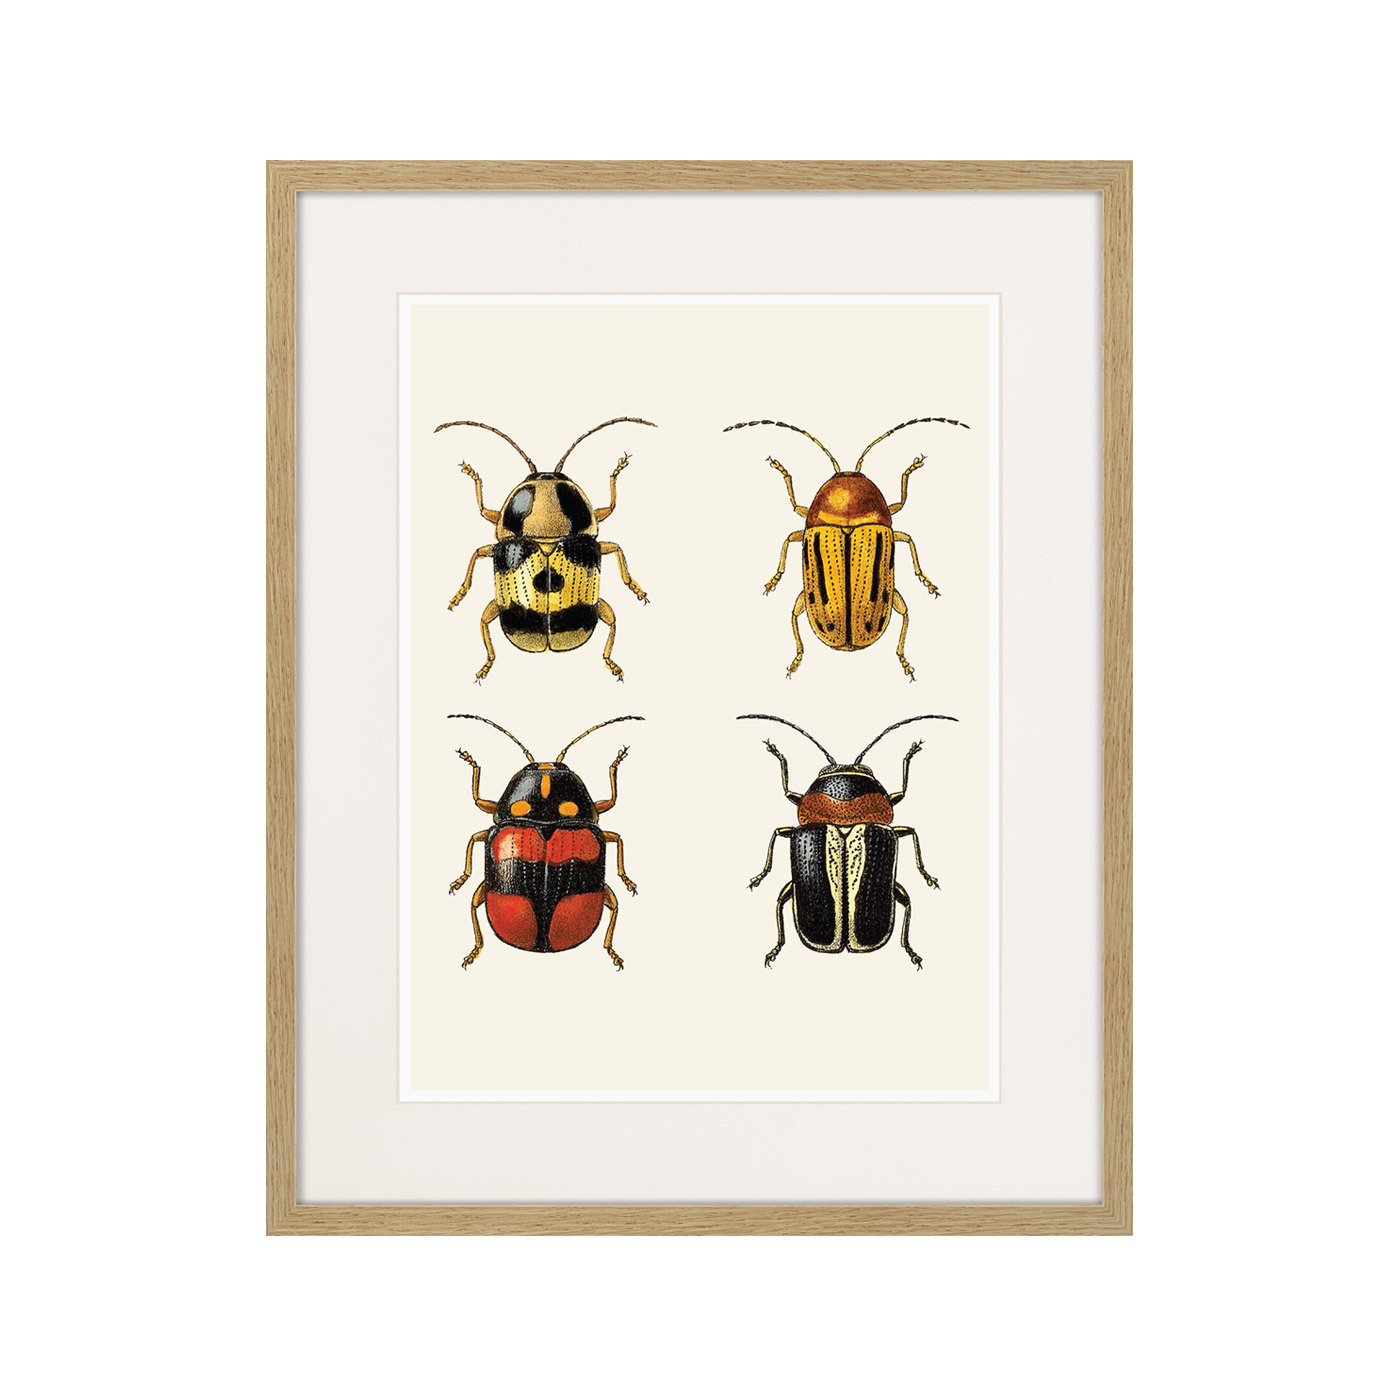 Assorted Beetles №6, 1735г.